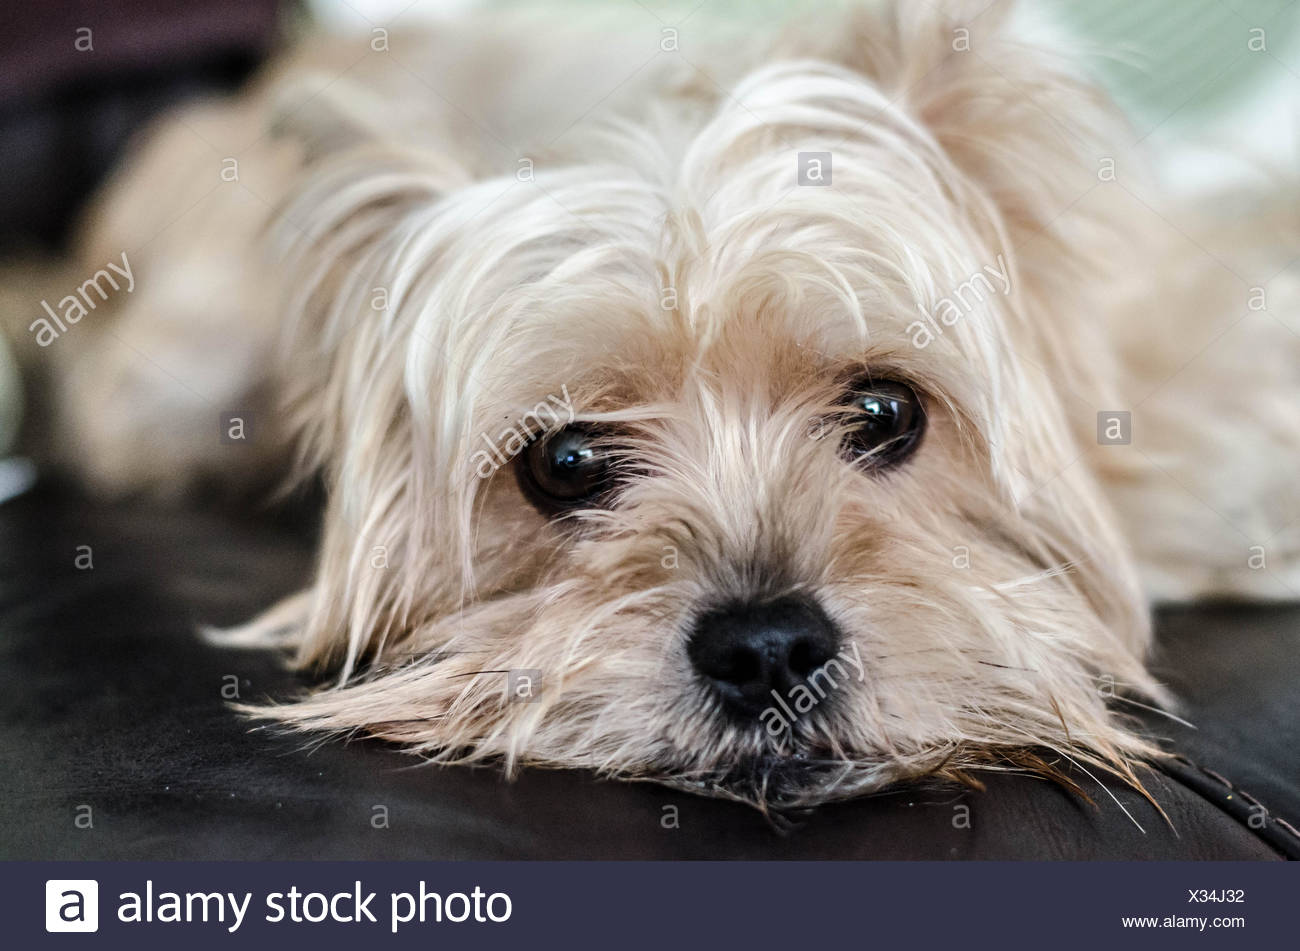 Portrait of a white yorkshire terrier dog lying on sofa - Stock Image